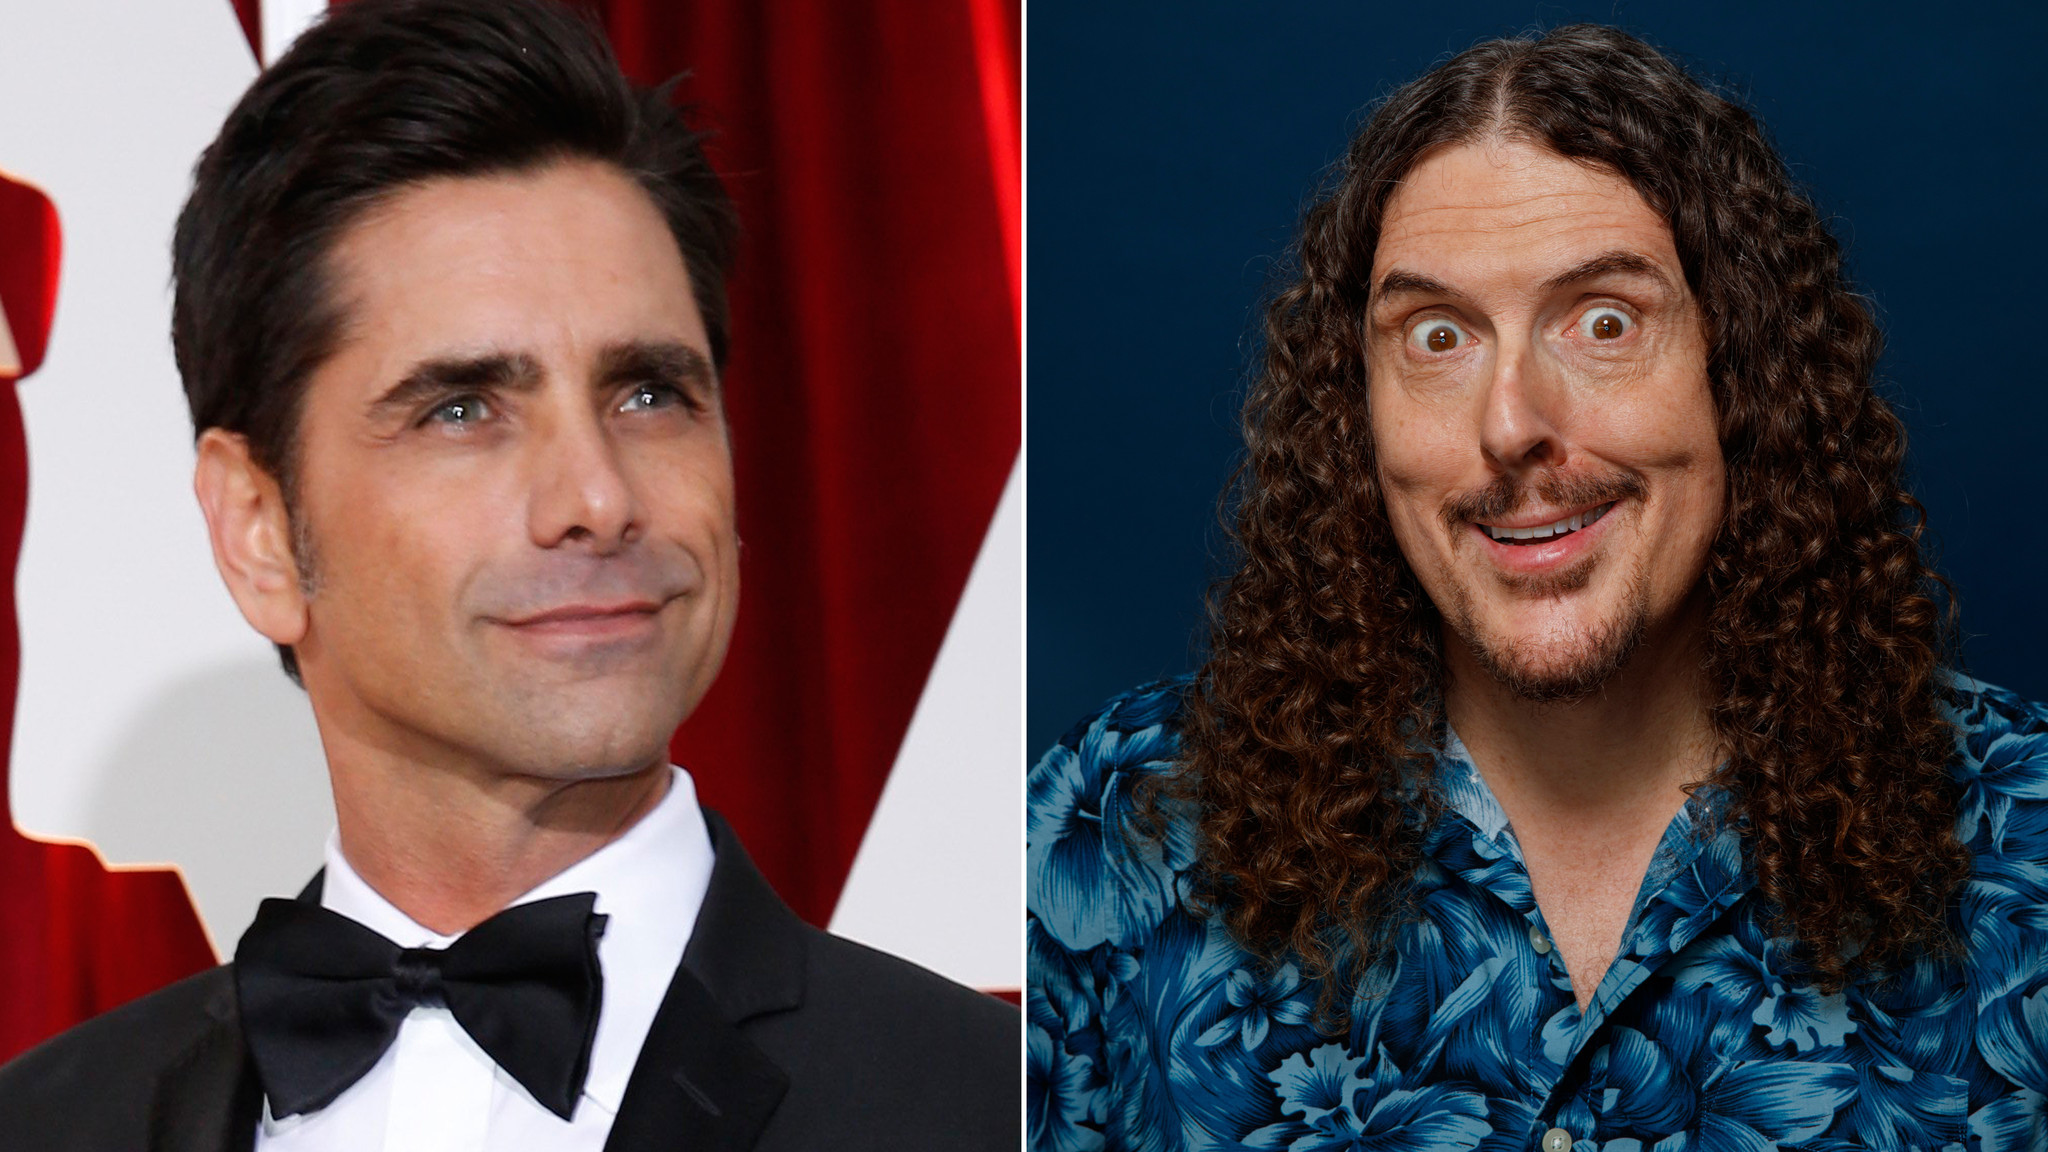 """John Stamos, left, will star as Willy Wonka, and """"Weird Al"""" Yankovic will play the Oompa Loompas. (Liz O. Baylen / Los Angeles Times, left; Jay L. Clendenin / Los Angeles Times, right)"""